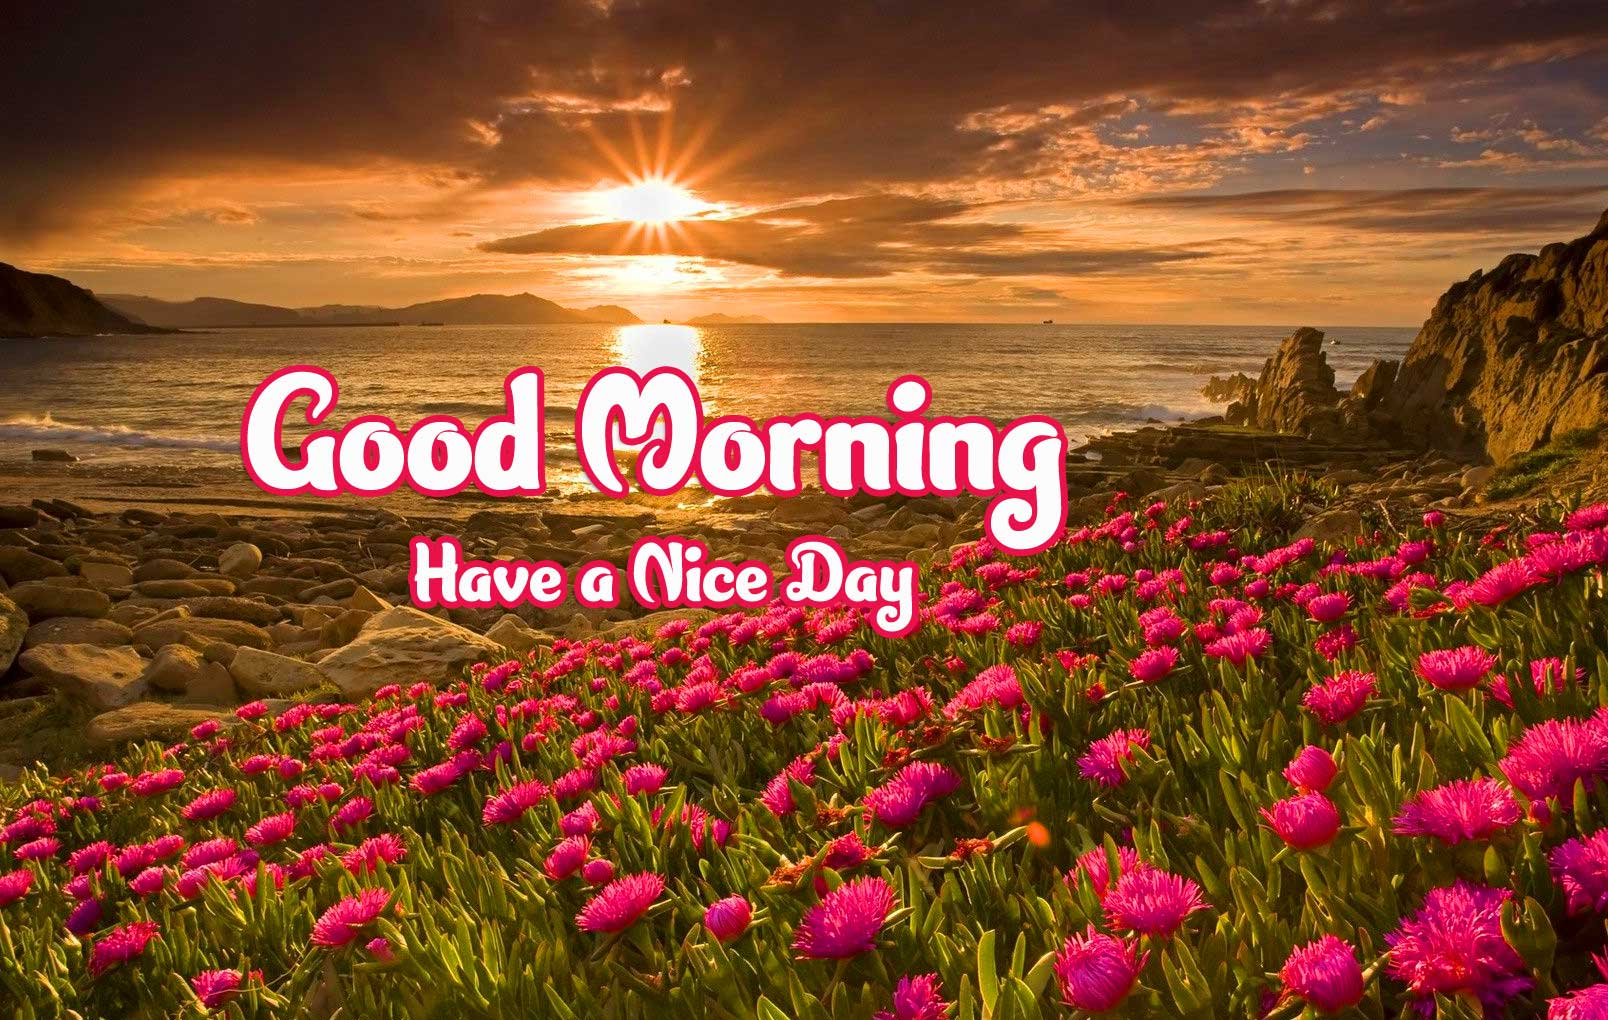 Good Morning 4k Ultra Images Pics Wallpaper Free Download